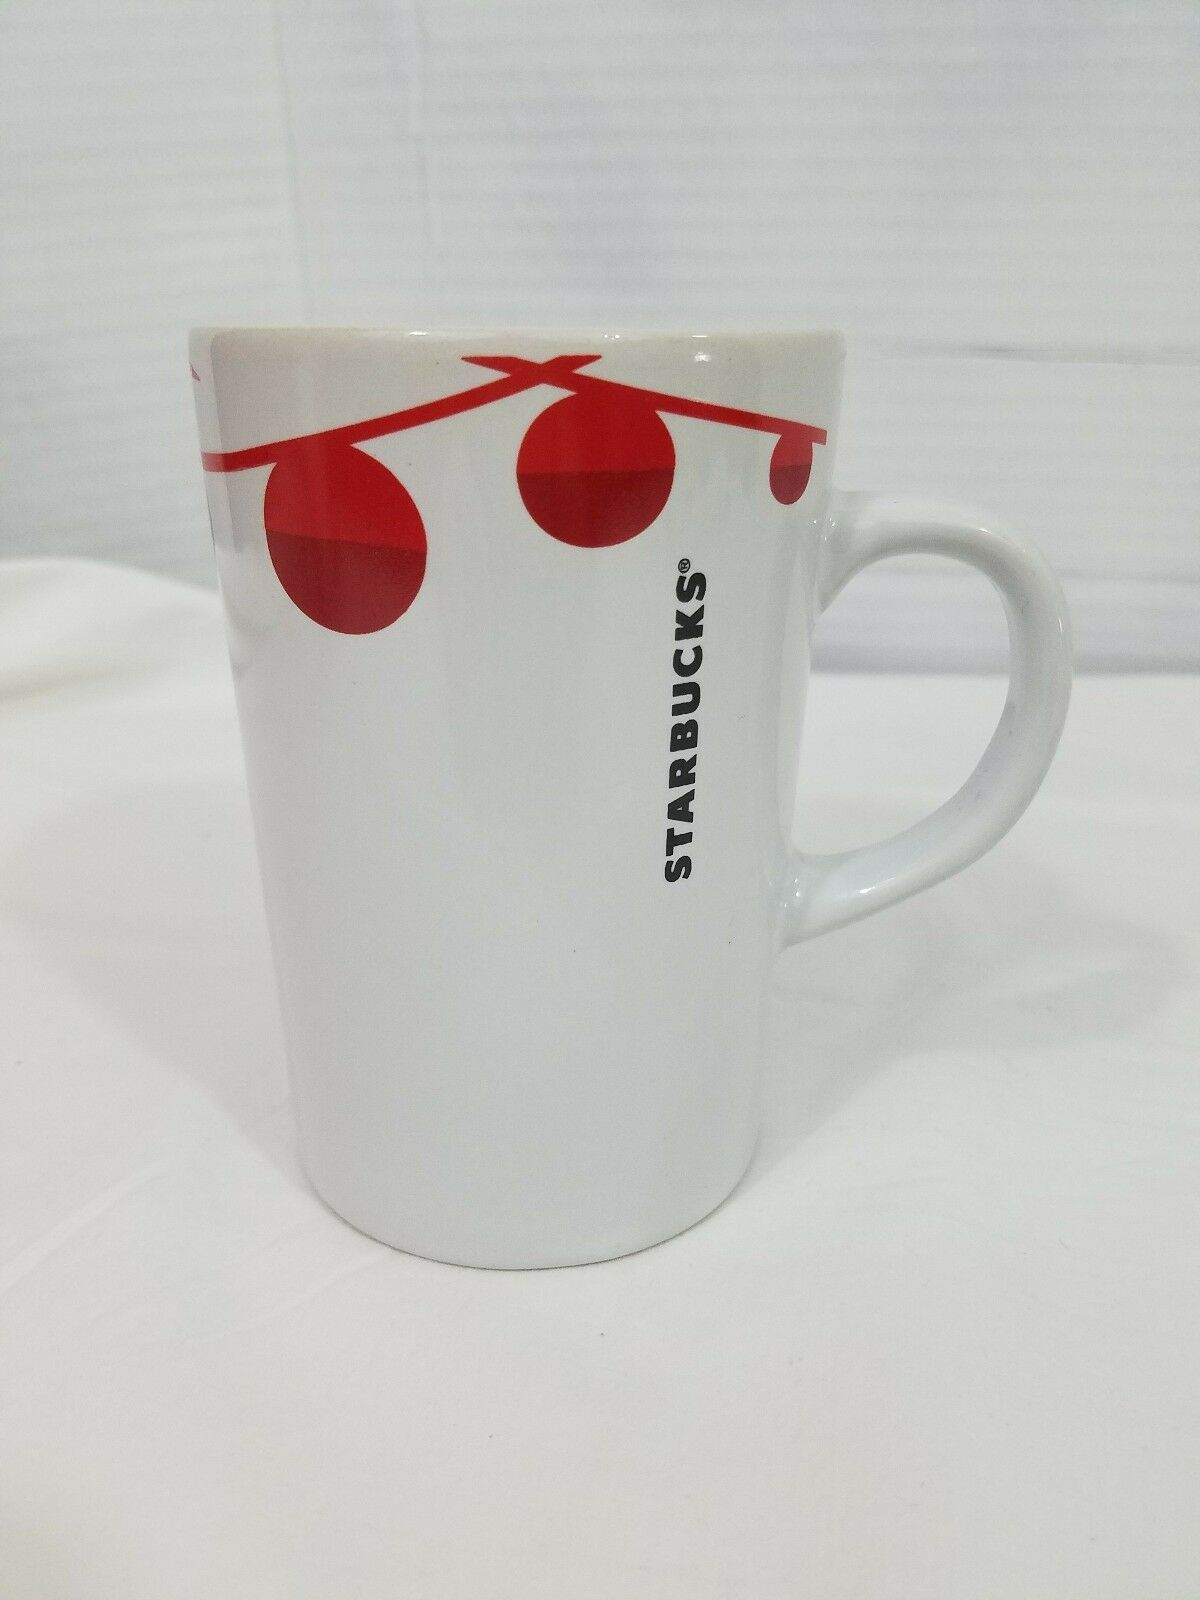 Primary image for Starbucks 2012 Christmas Holiday Coffee Cup Mug White w/Red Ornaments 10.8 fl oz